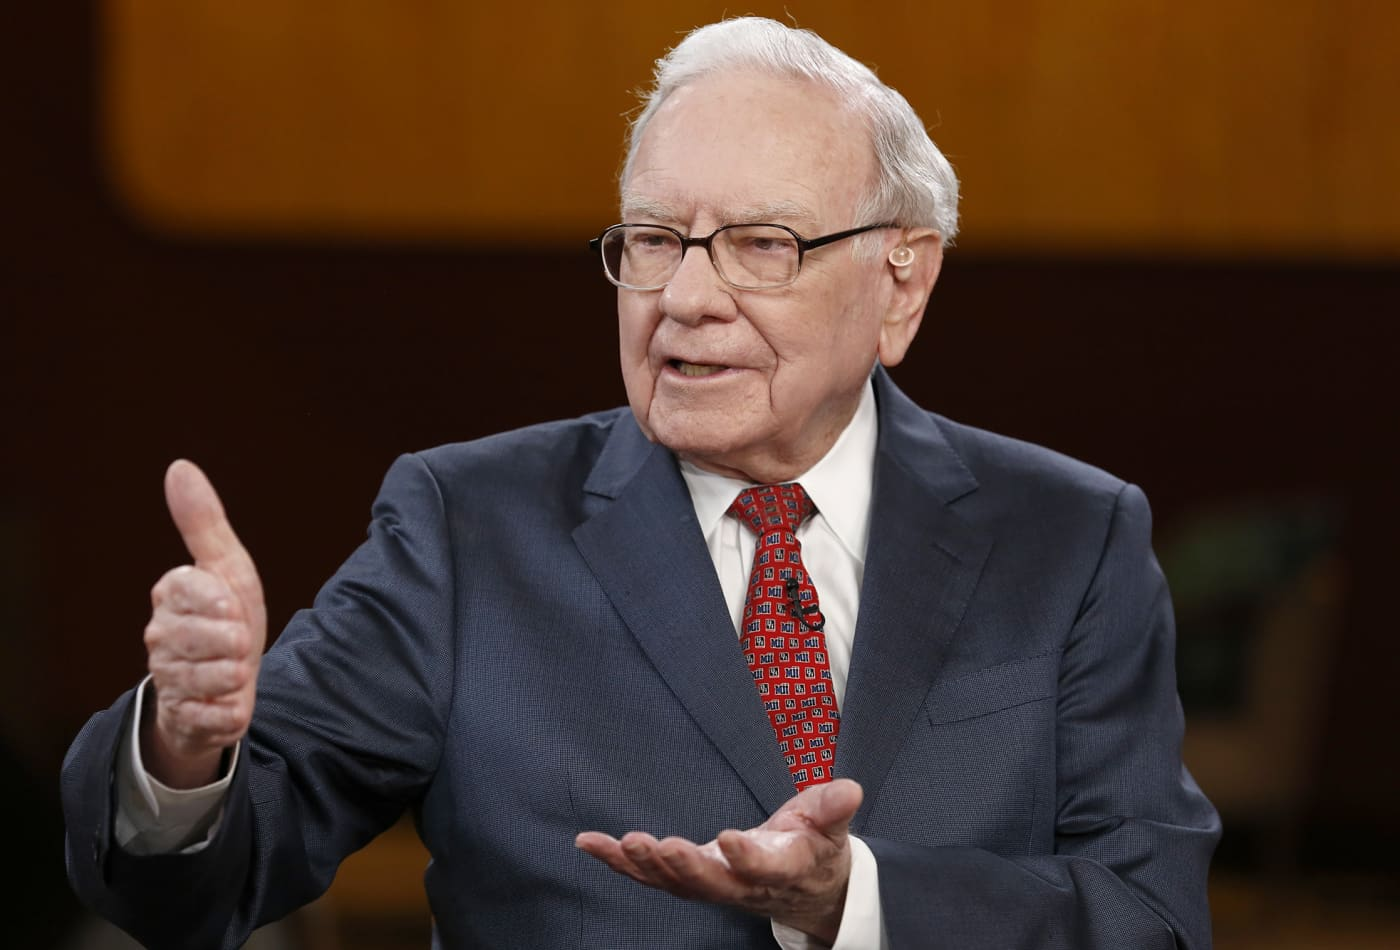 Warren Buffett warns against carrying a credit card balance: 'You can't go through life borrowing money at those rates'